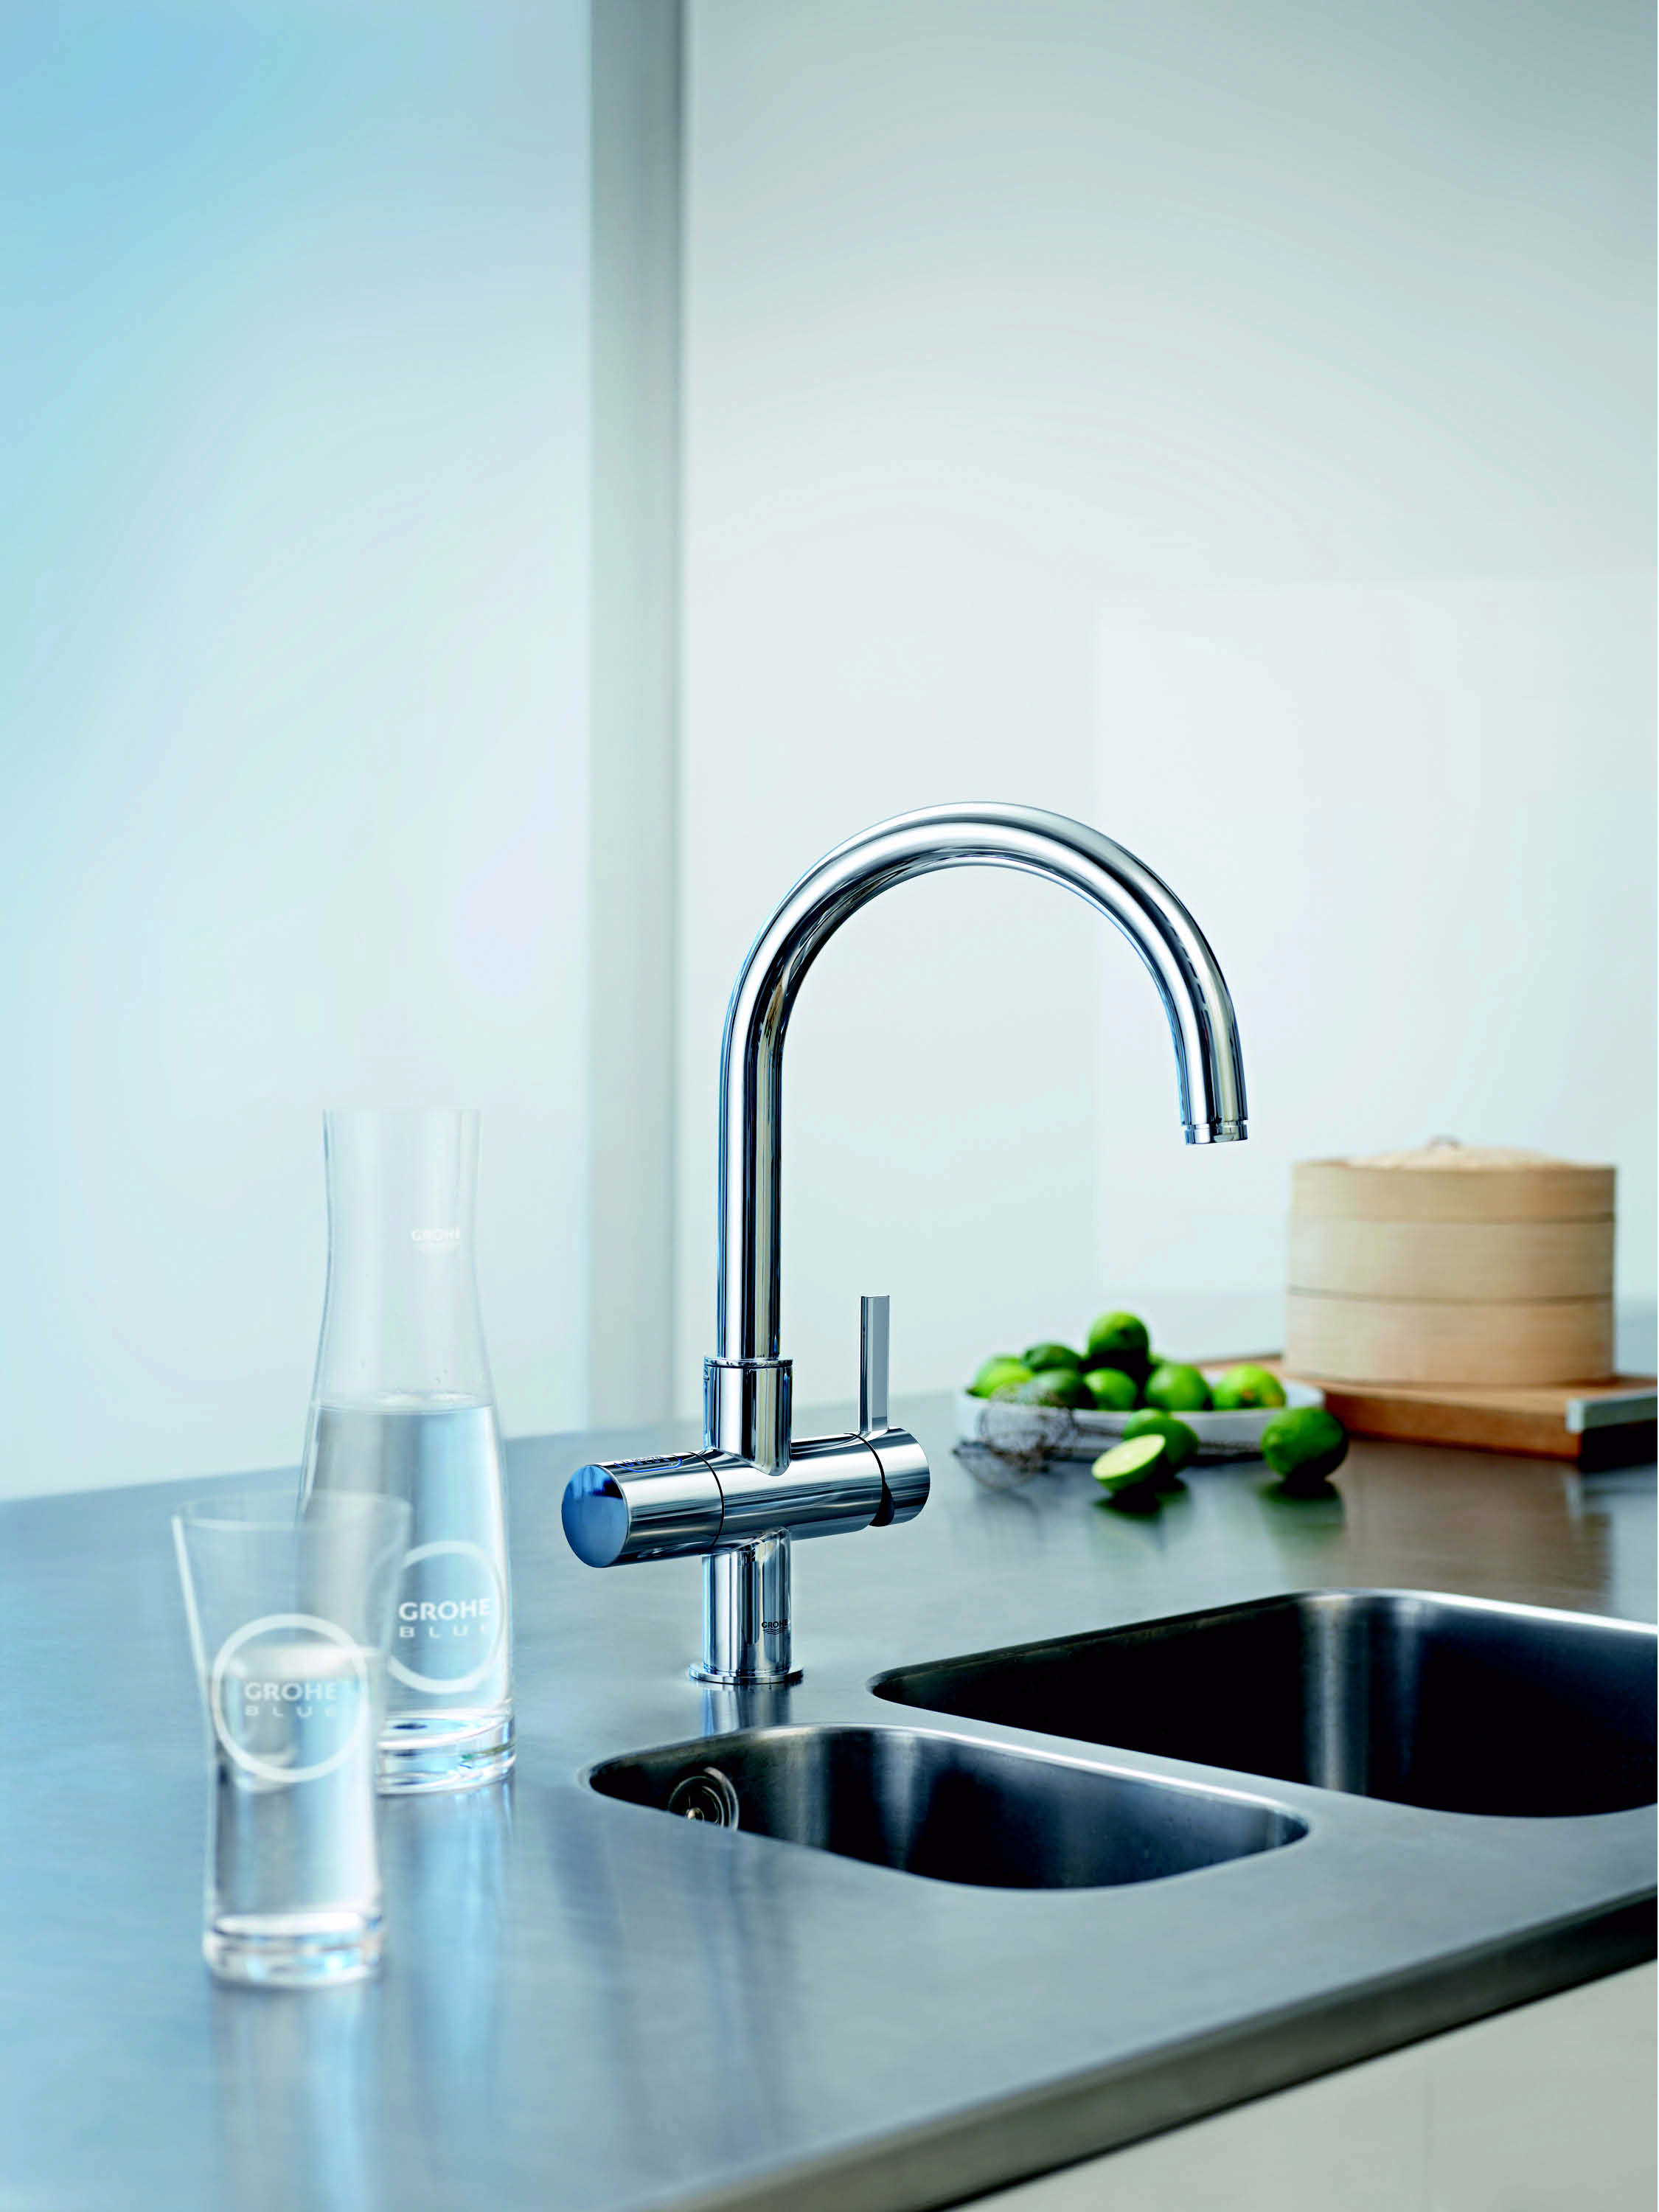 grohe europlus ii kitchen faucet parts grohe kitchen faucet Grohe Faucets Southnext Us Grohe Europlus Kitchen Faucet